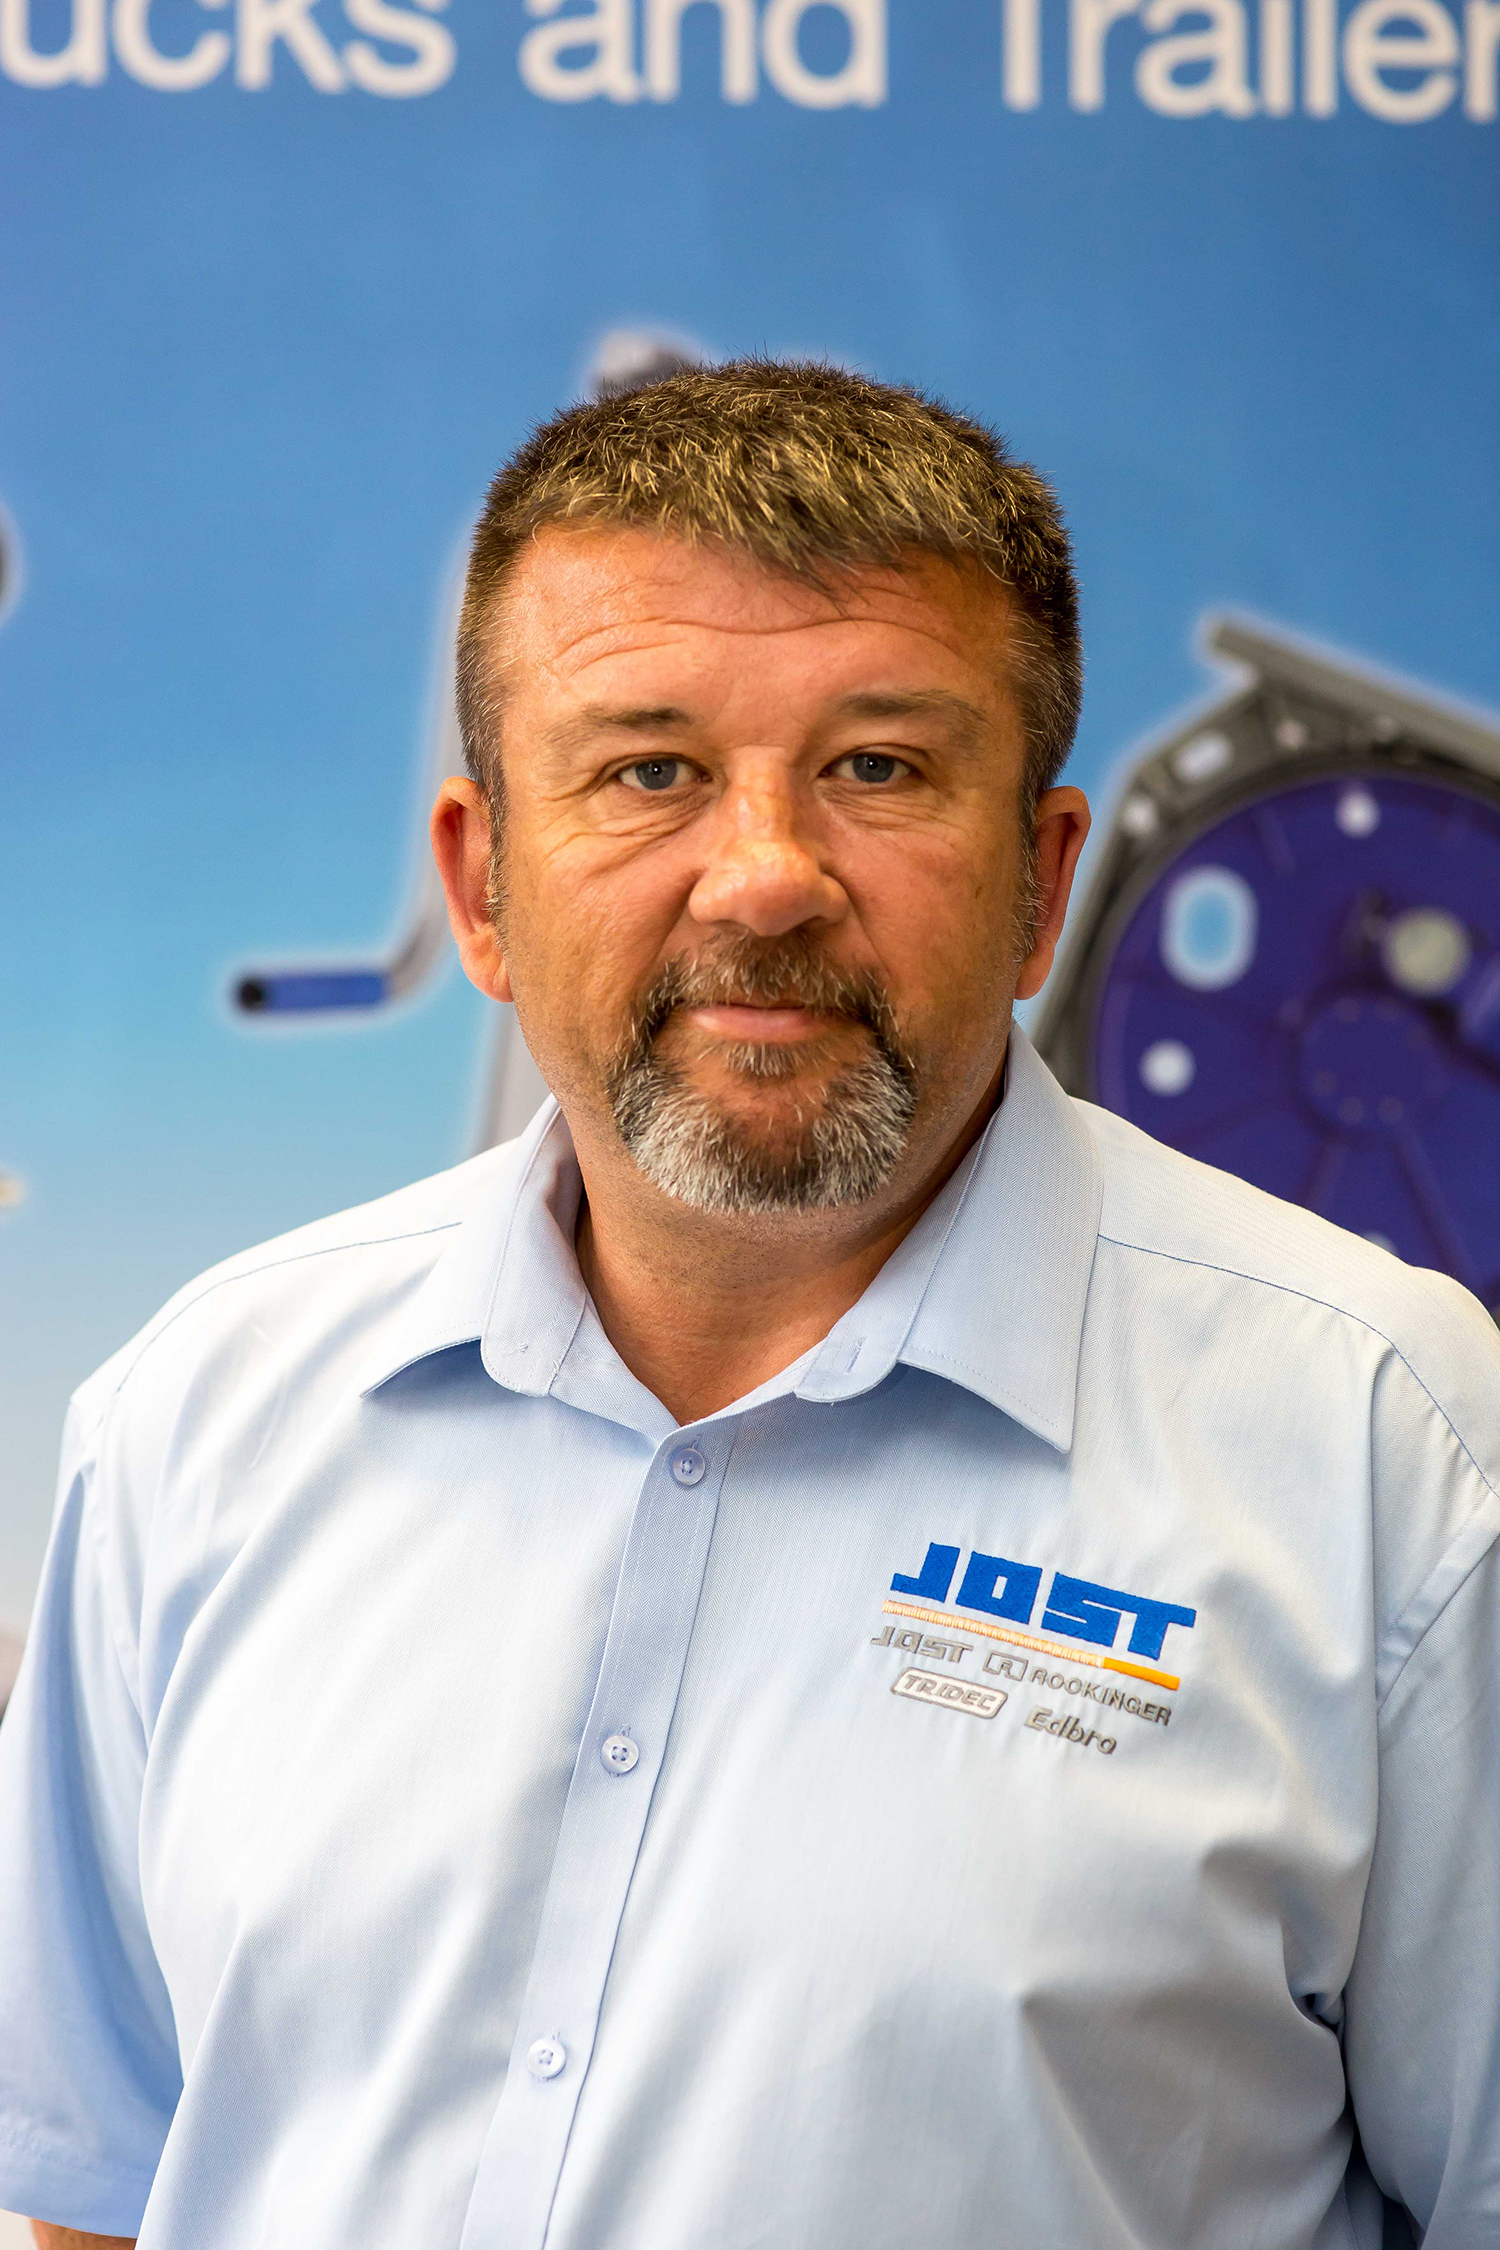 JOST UK appoints Lee Wilson as Area Sales Manager for Southern region